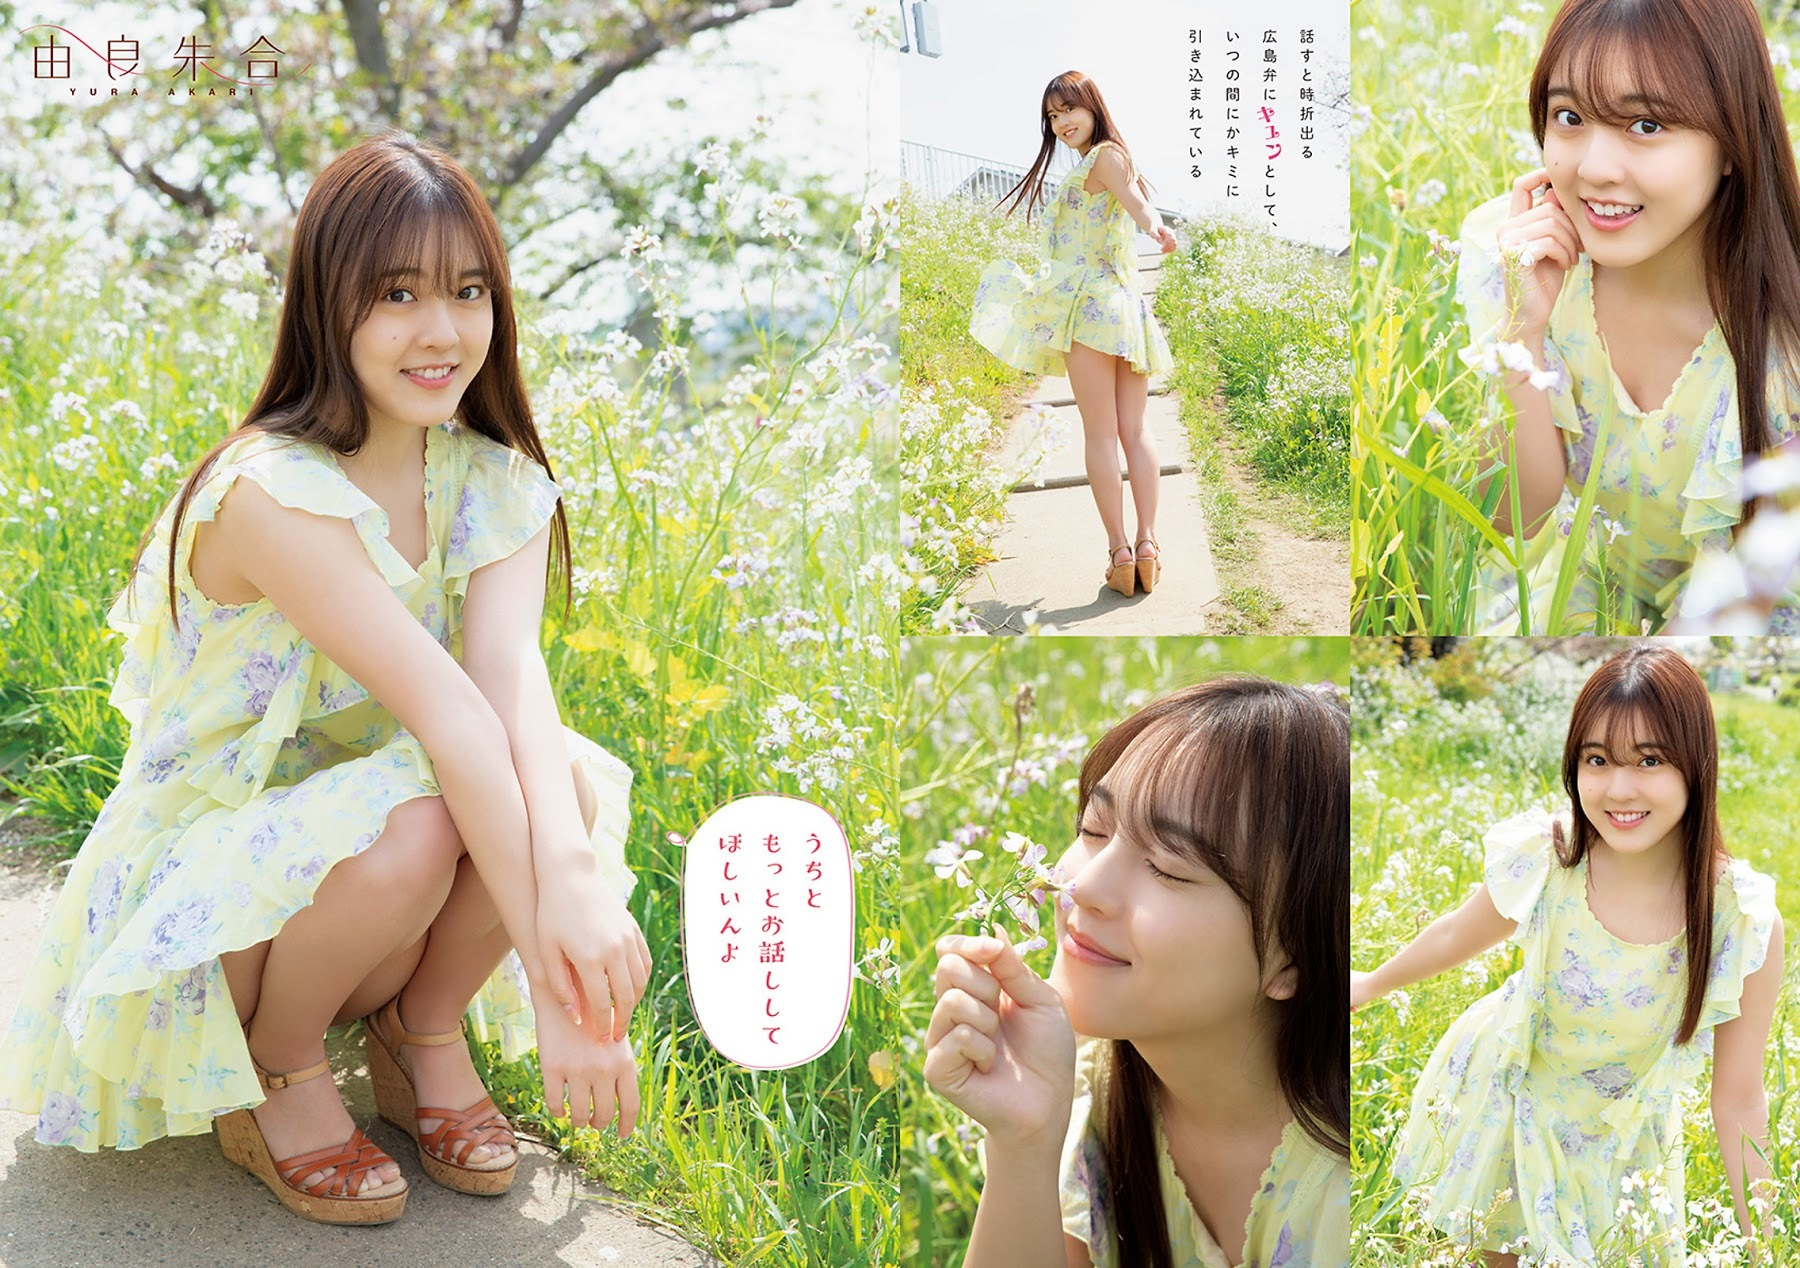 21yearold active female college student from Hiroshima Yura Shugo Swimsuit gravure 2020002